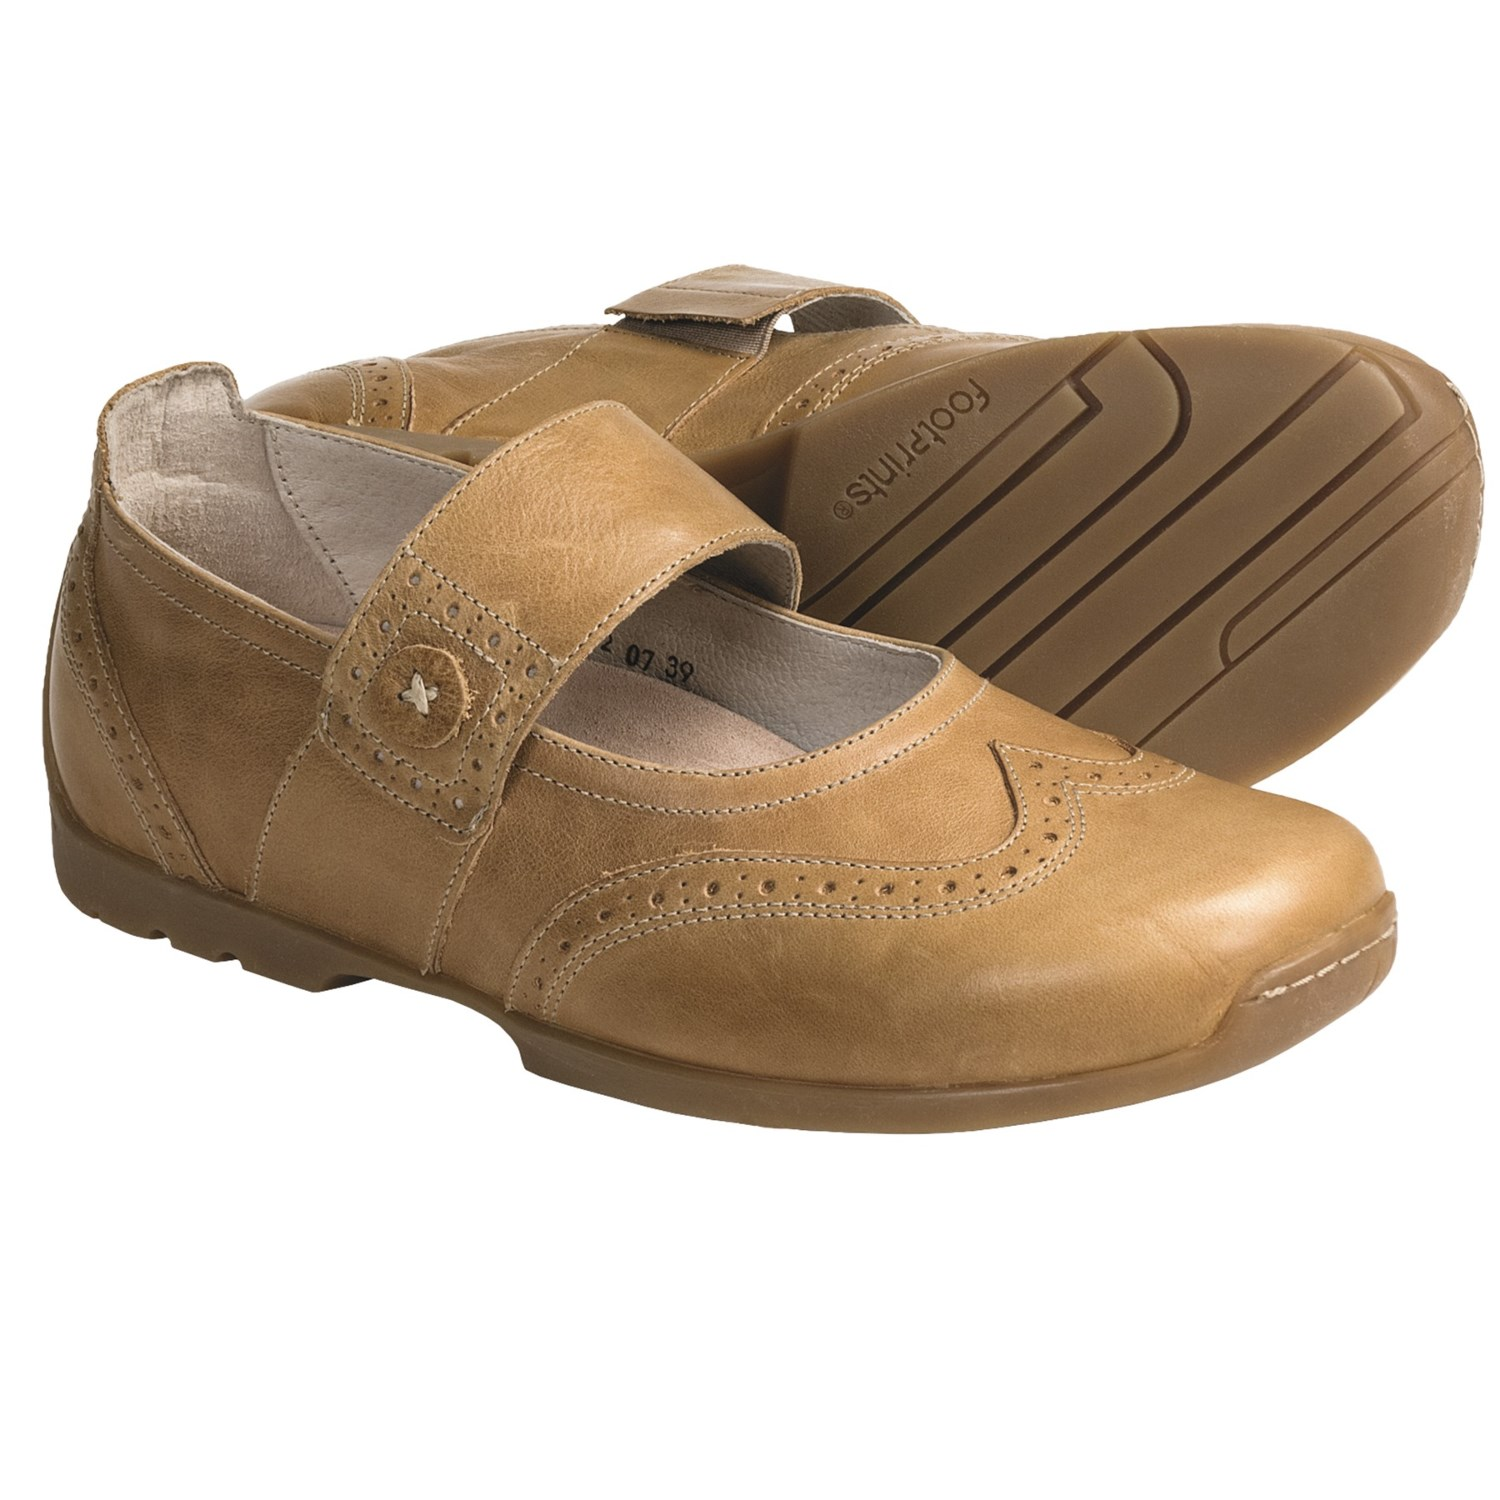 footprints by birkenstock elmira shoes leather for